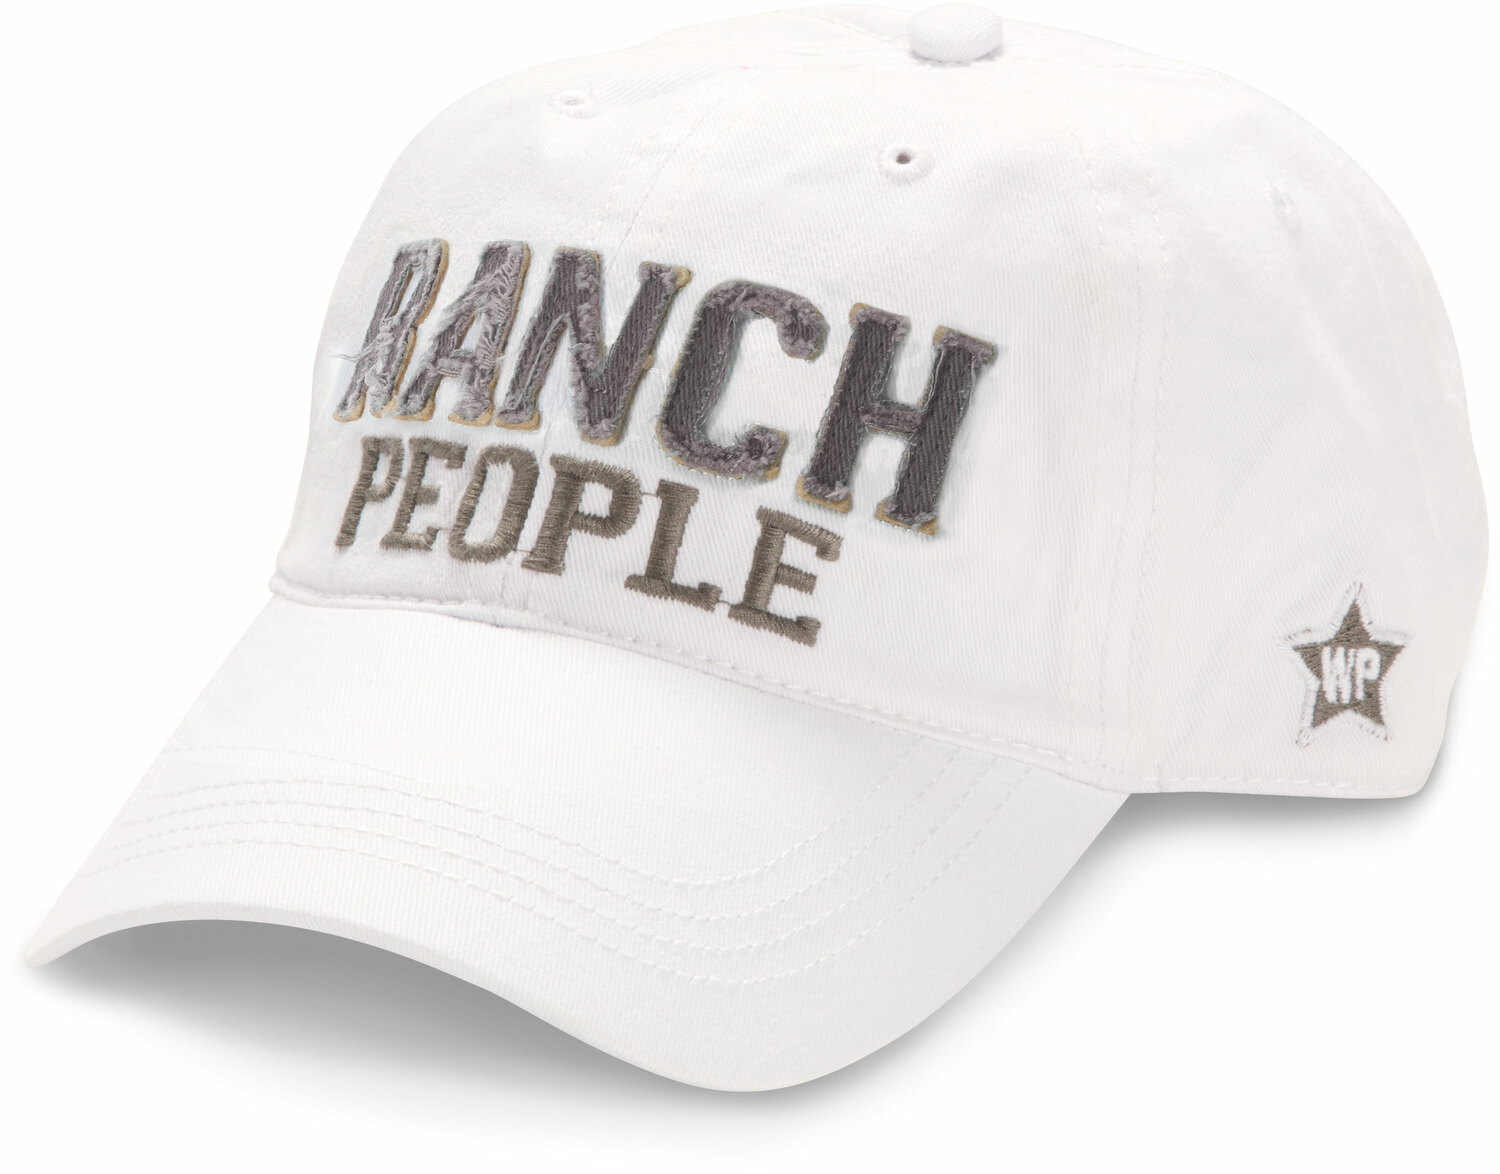 Ranch People by We People - Ranch People - White Adjustable Hat